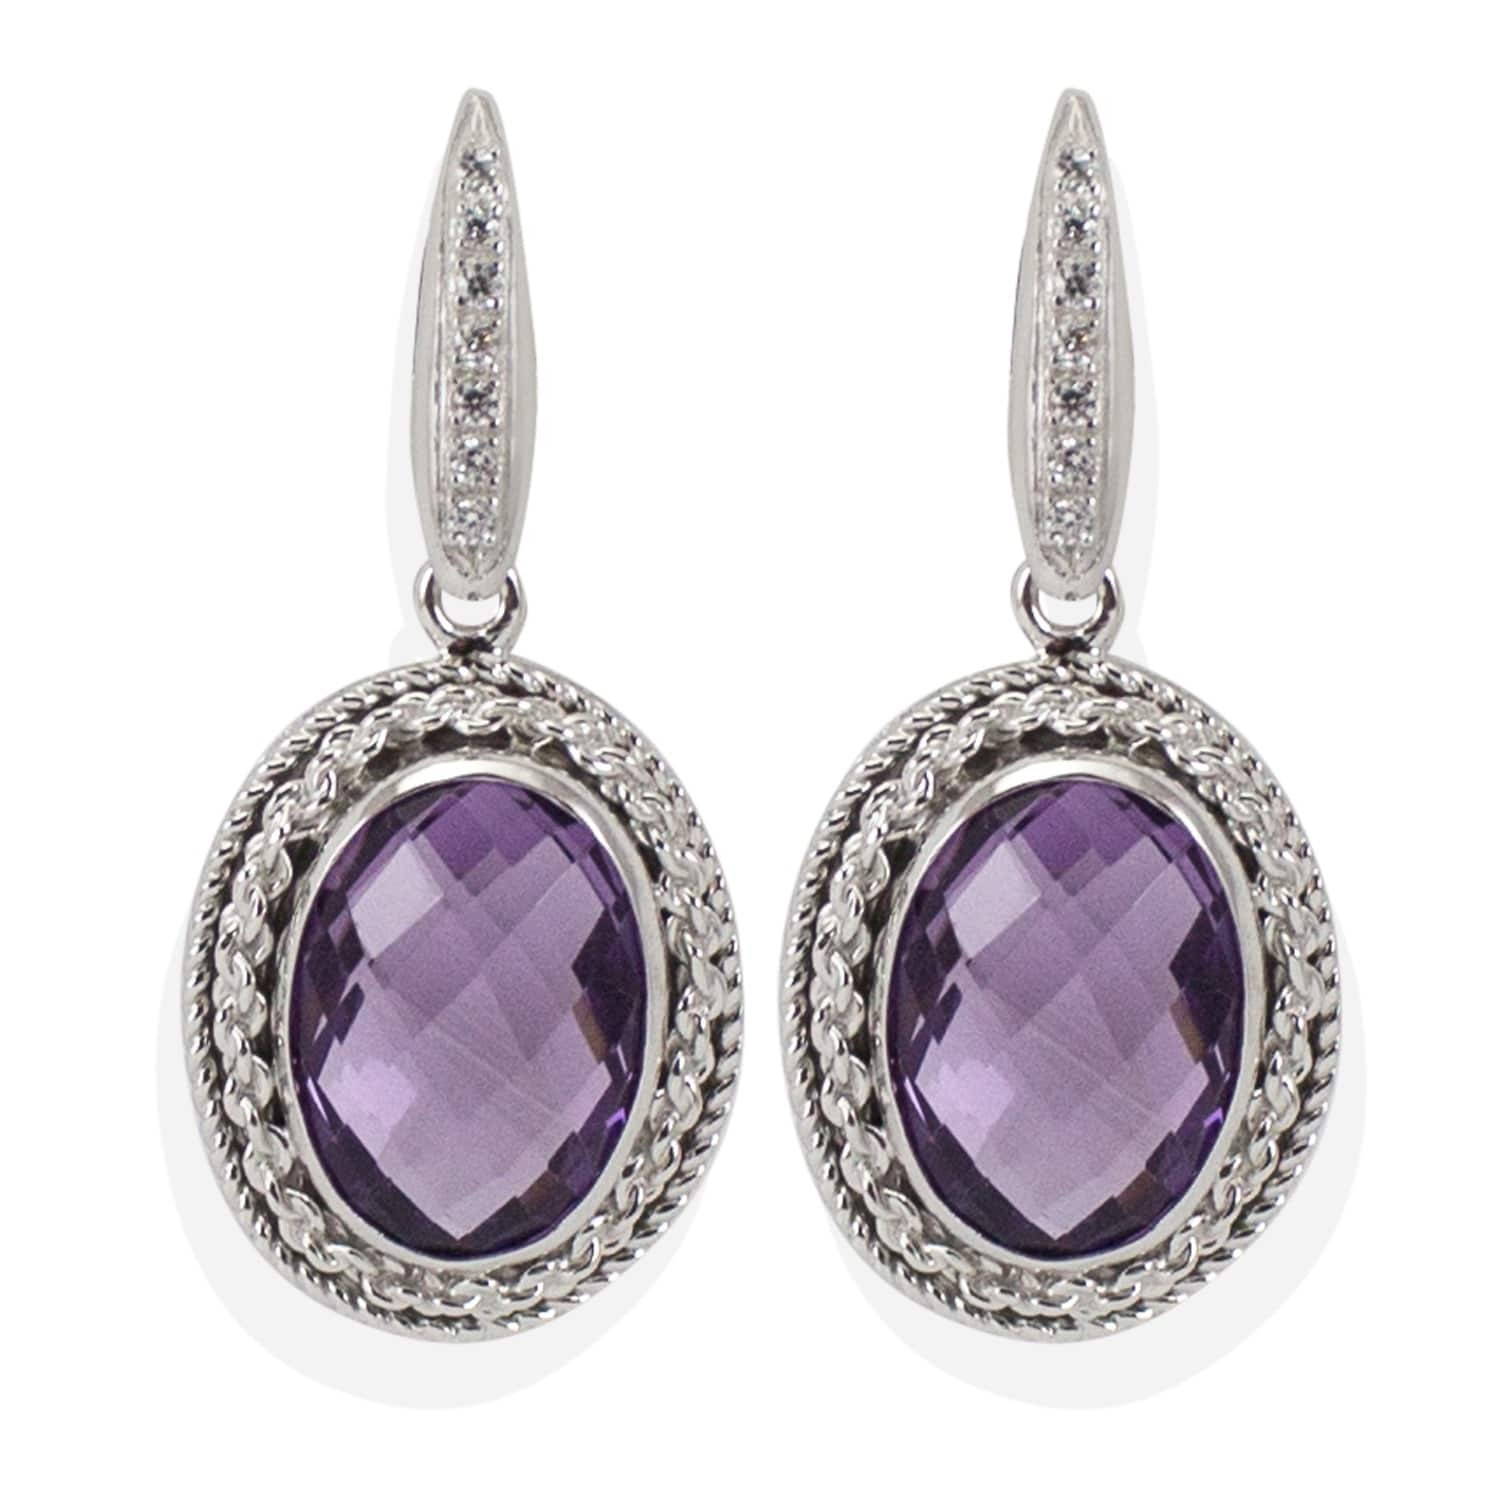 Italy Design Jewelry Minerva Amethyst Earrings By Vintouch Italy